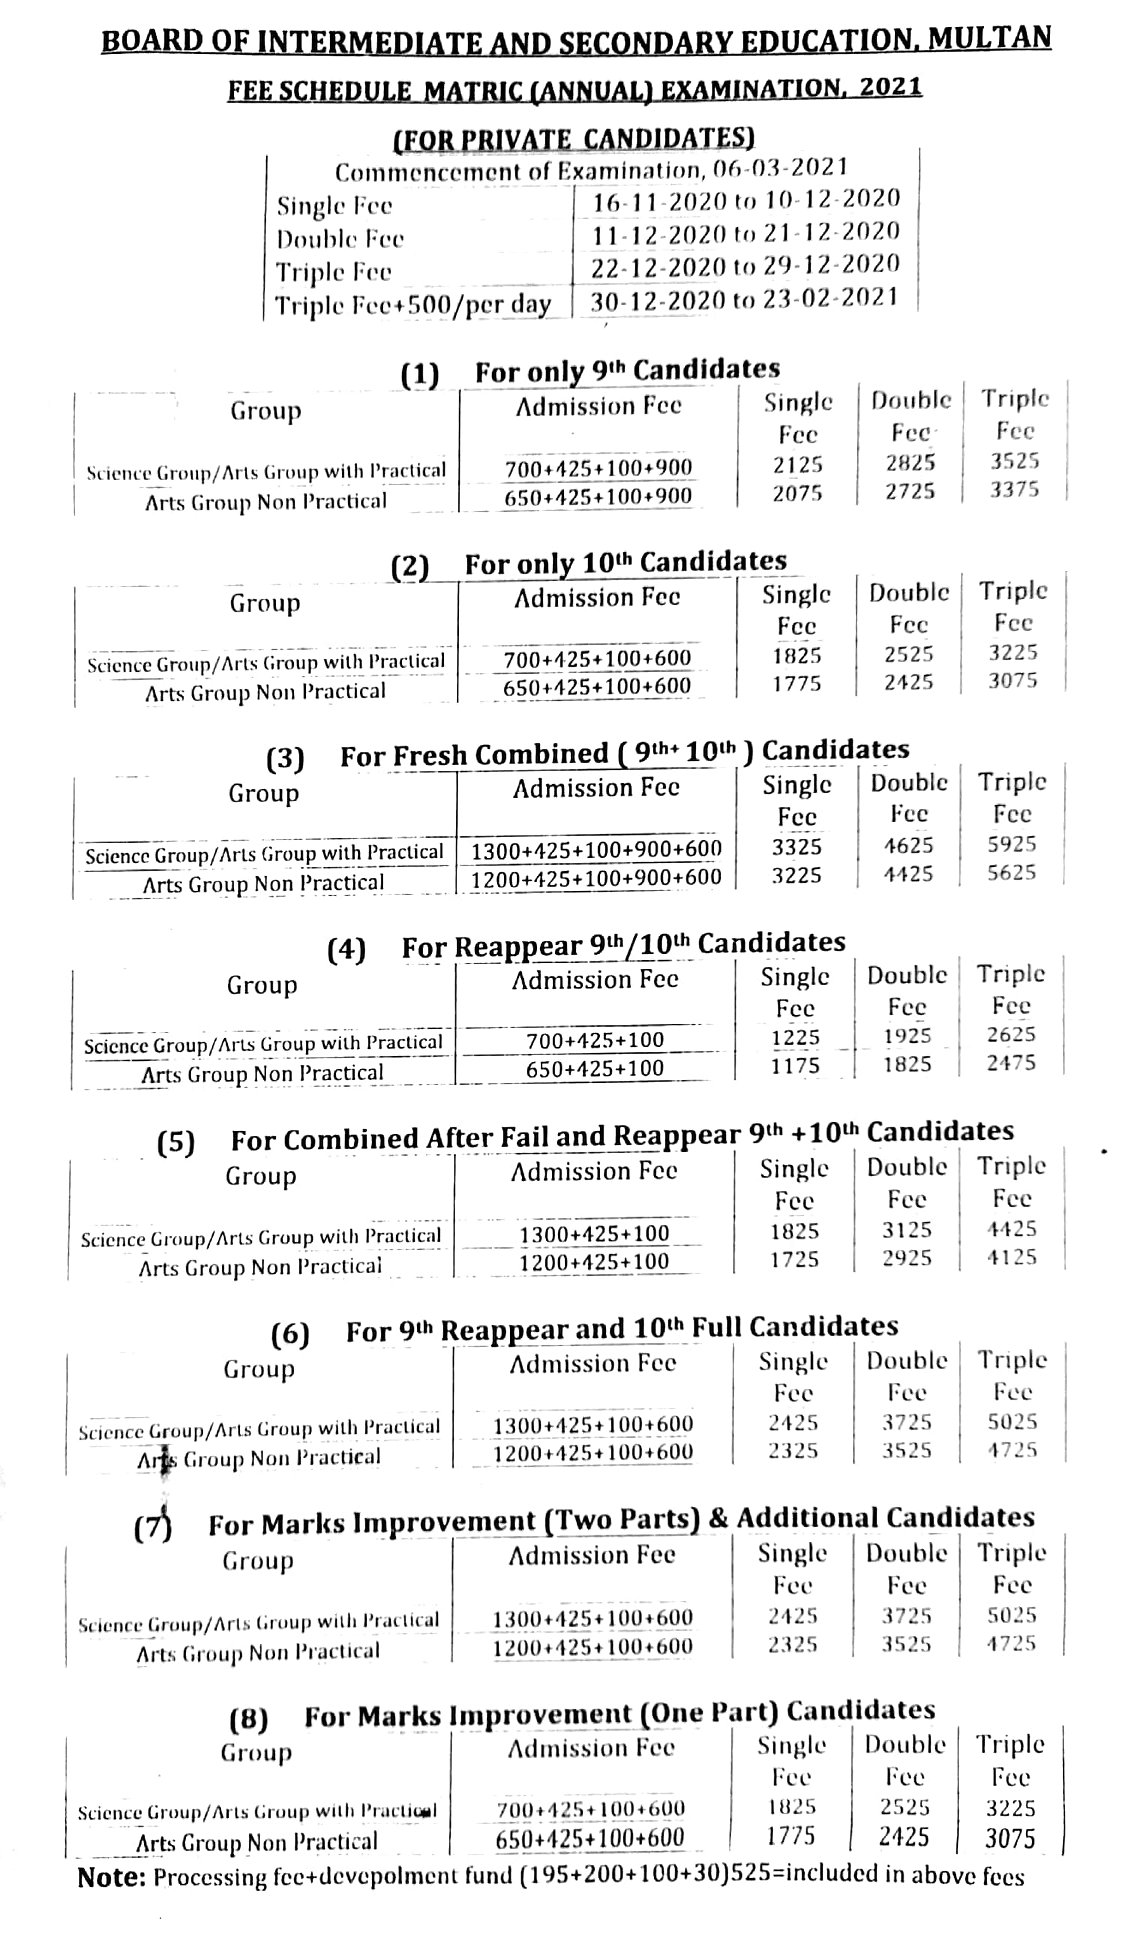 BISE Multan Fee Schedule SSC Annual Exams 2021